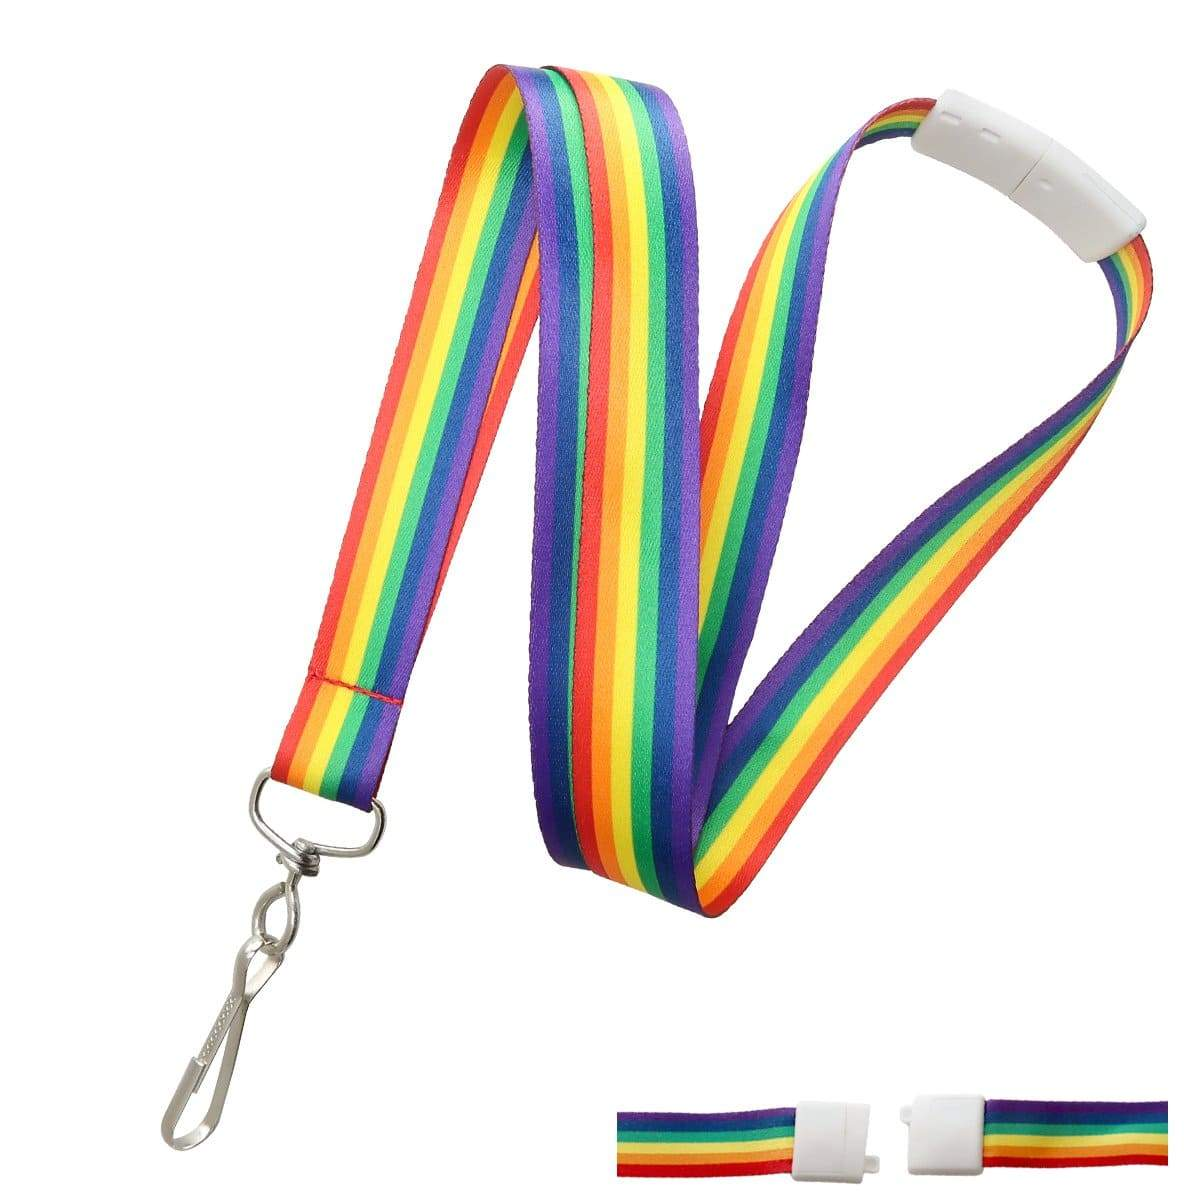 Rainbow Lanyard with Breakaway Clasp and Swivel Hook (P/N 2138-5260)